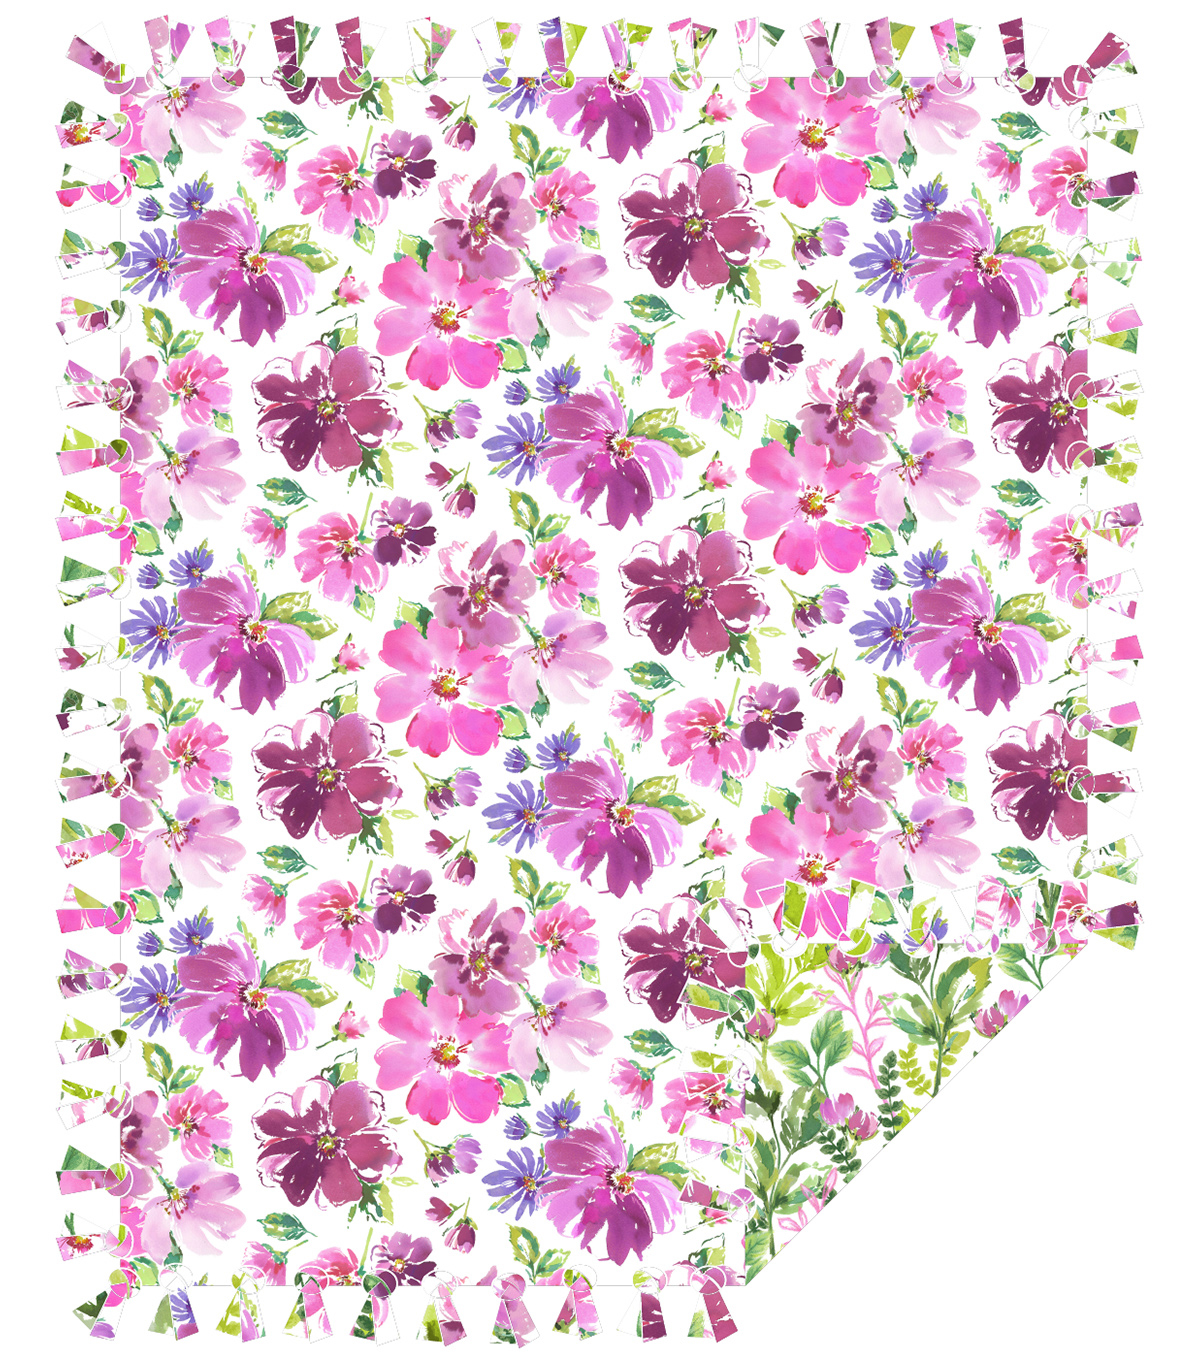 now-sew-fleece-throw-watercolor-floral -------- ------------now-sew-fleece-throw-watercolor-floral by joann